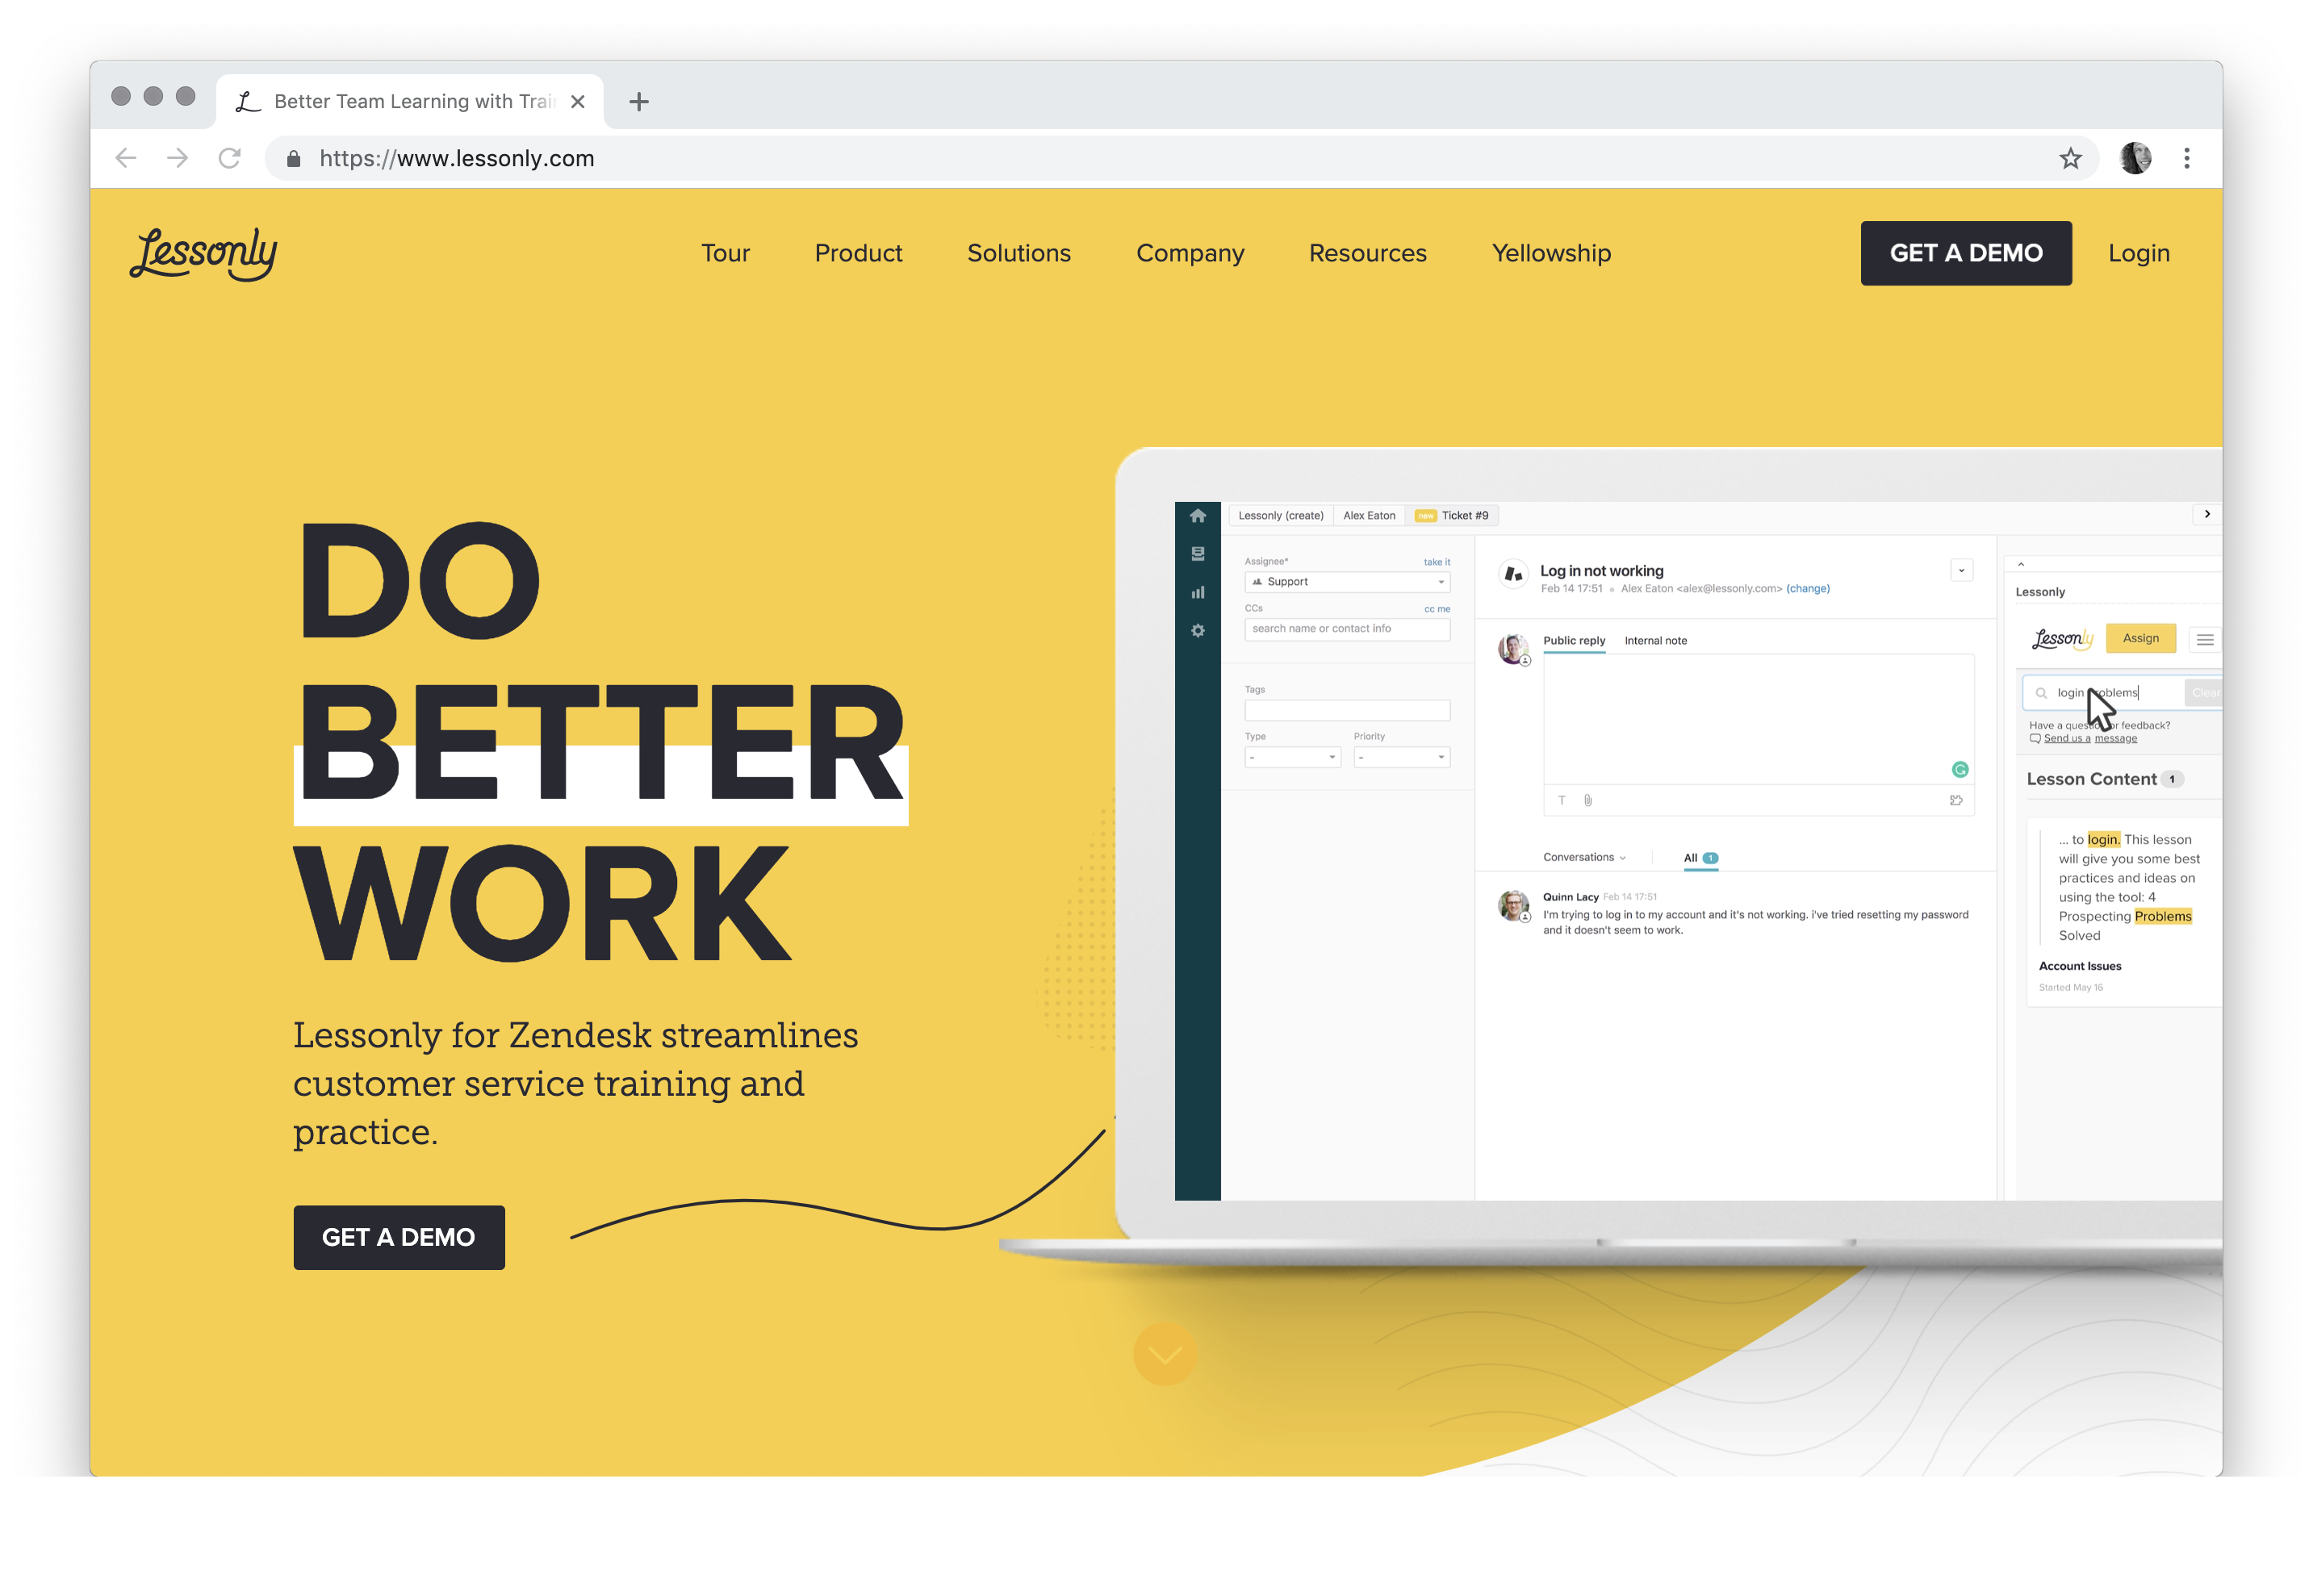 Better Team Learning with Training Software by Lessonly